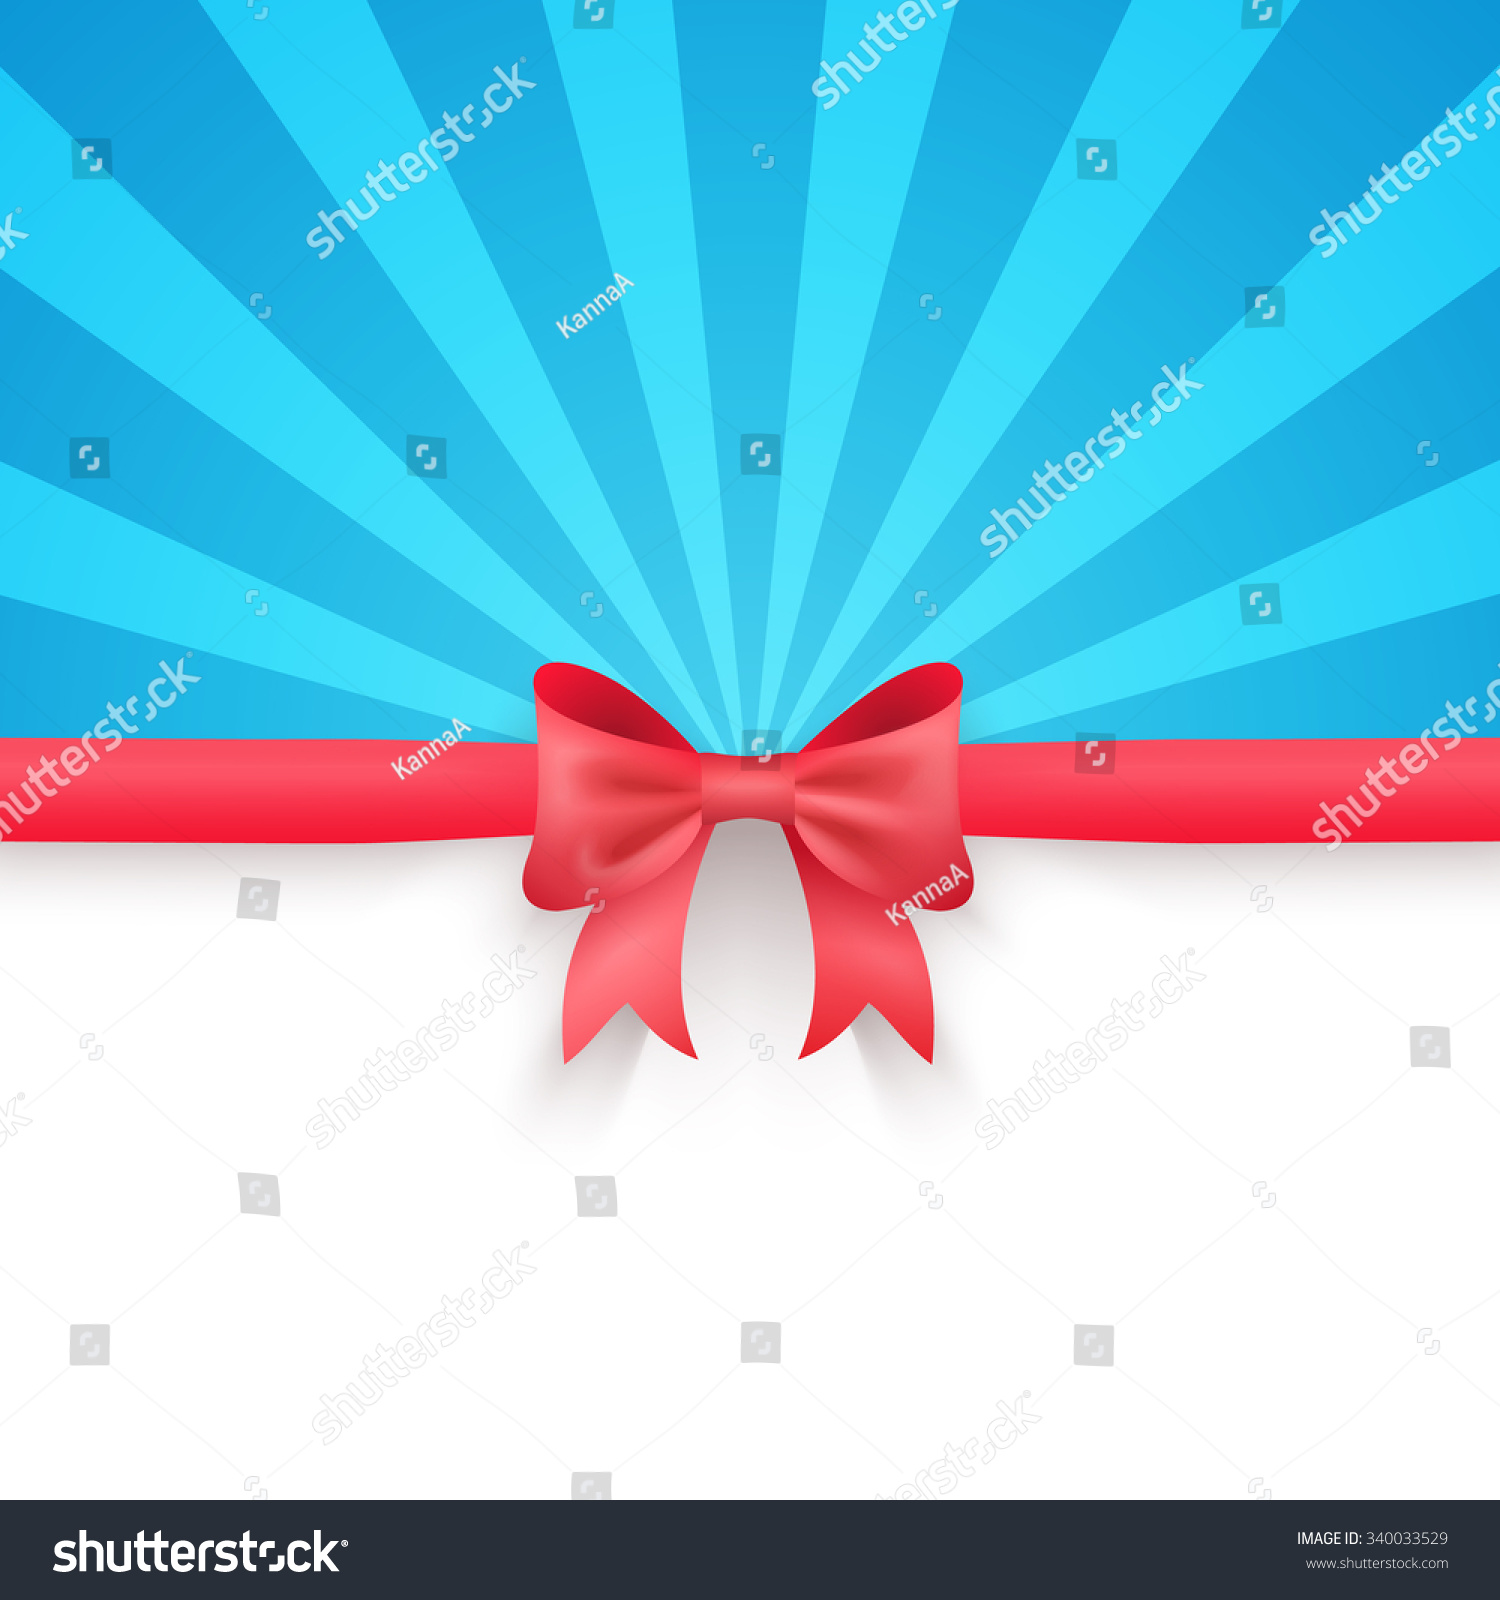 Red gift bows border with clipping path for easy background removing - Winter Blue Beam Background With Cute Red Gift Bow And Ribbon Illustration For Merry Christmas